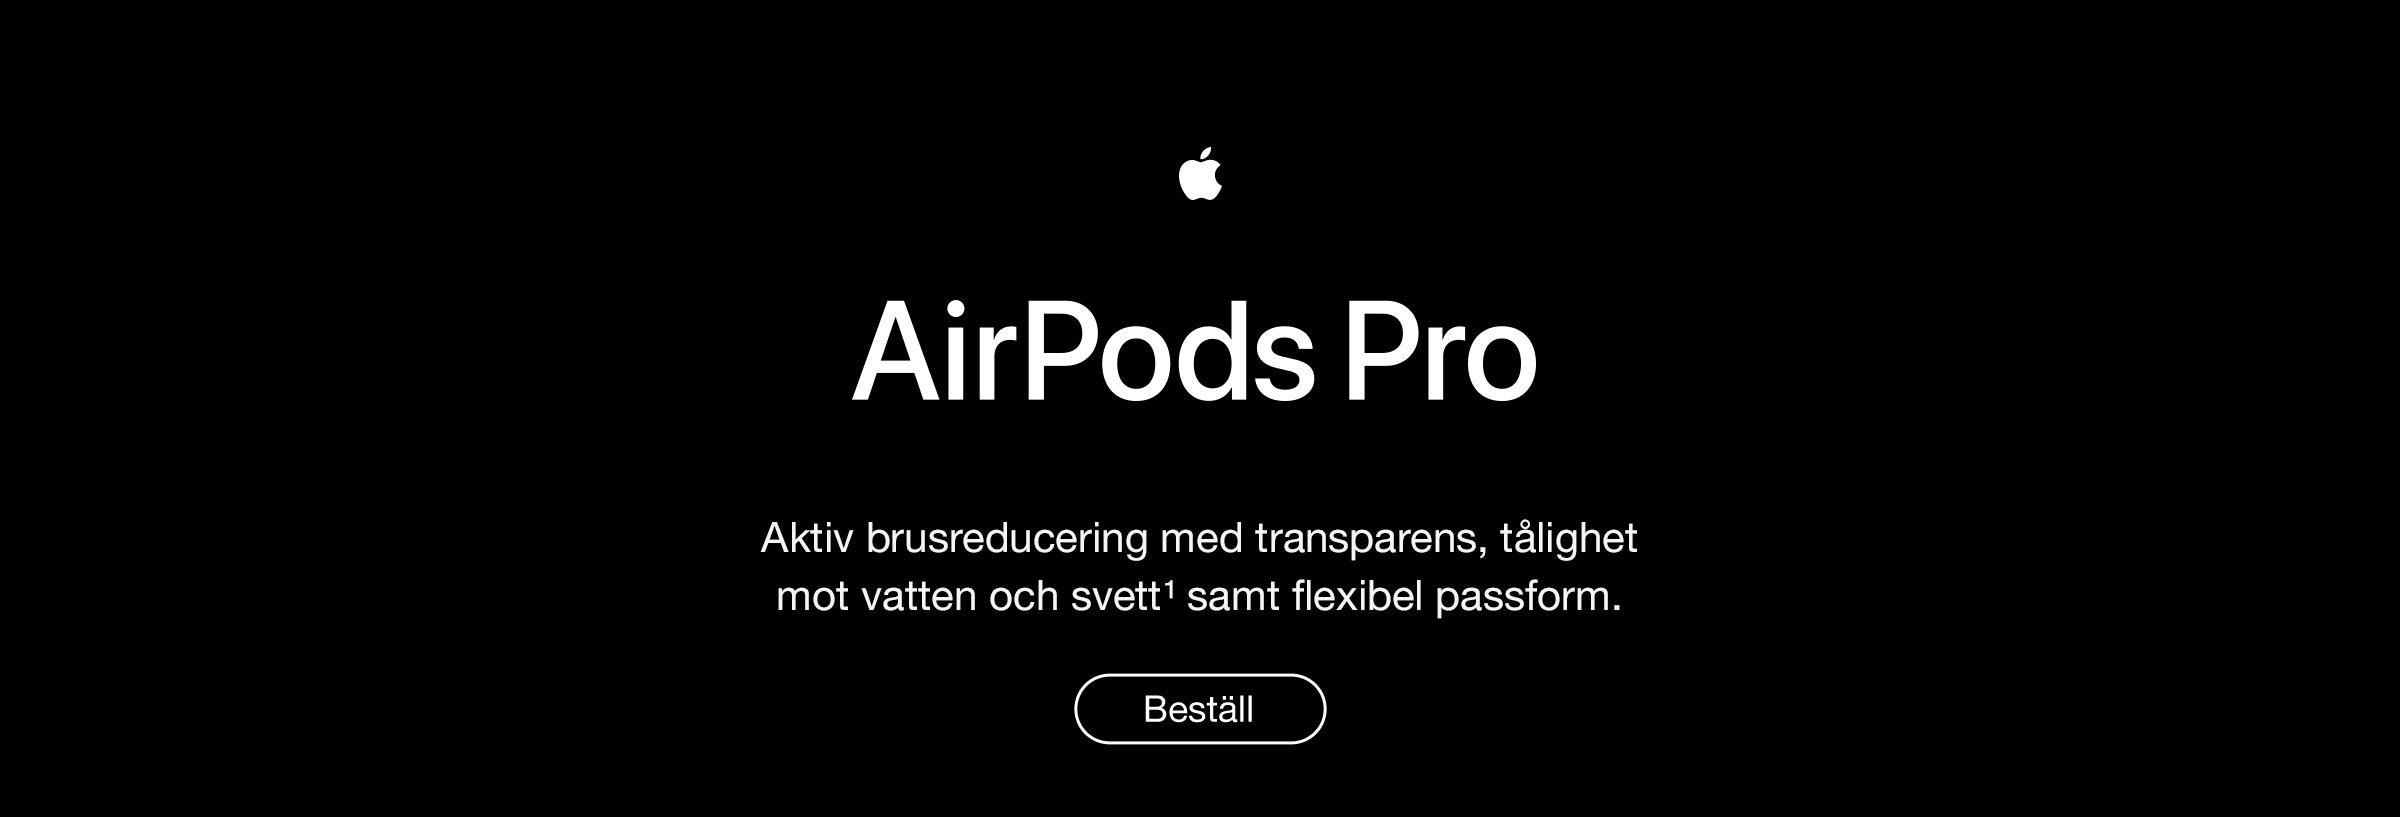 apple-airpods-pro-1